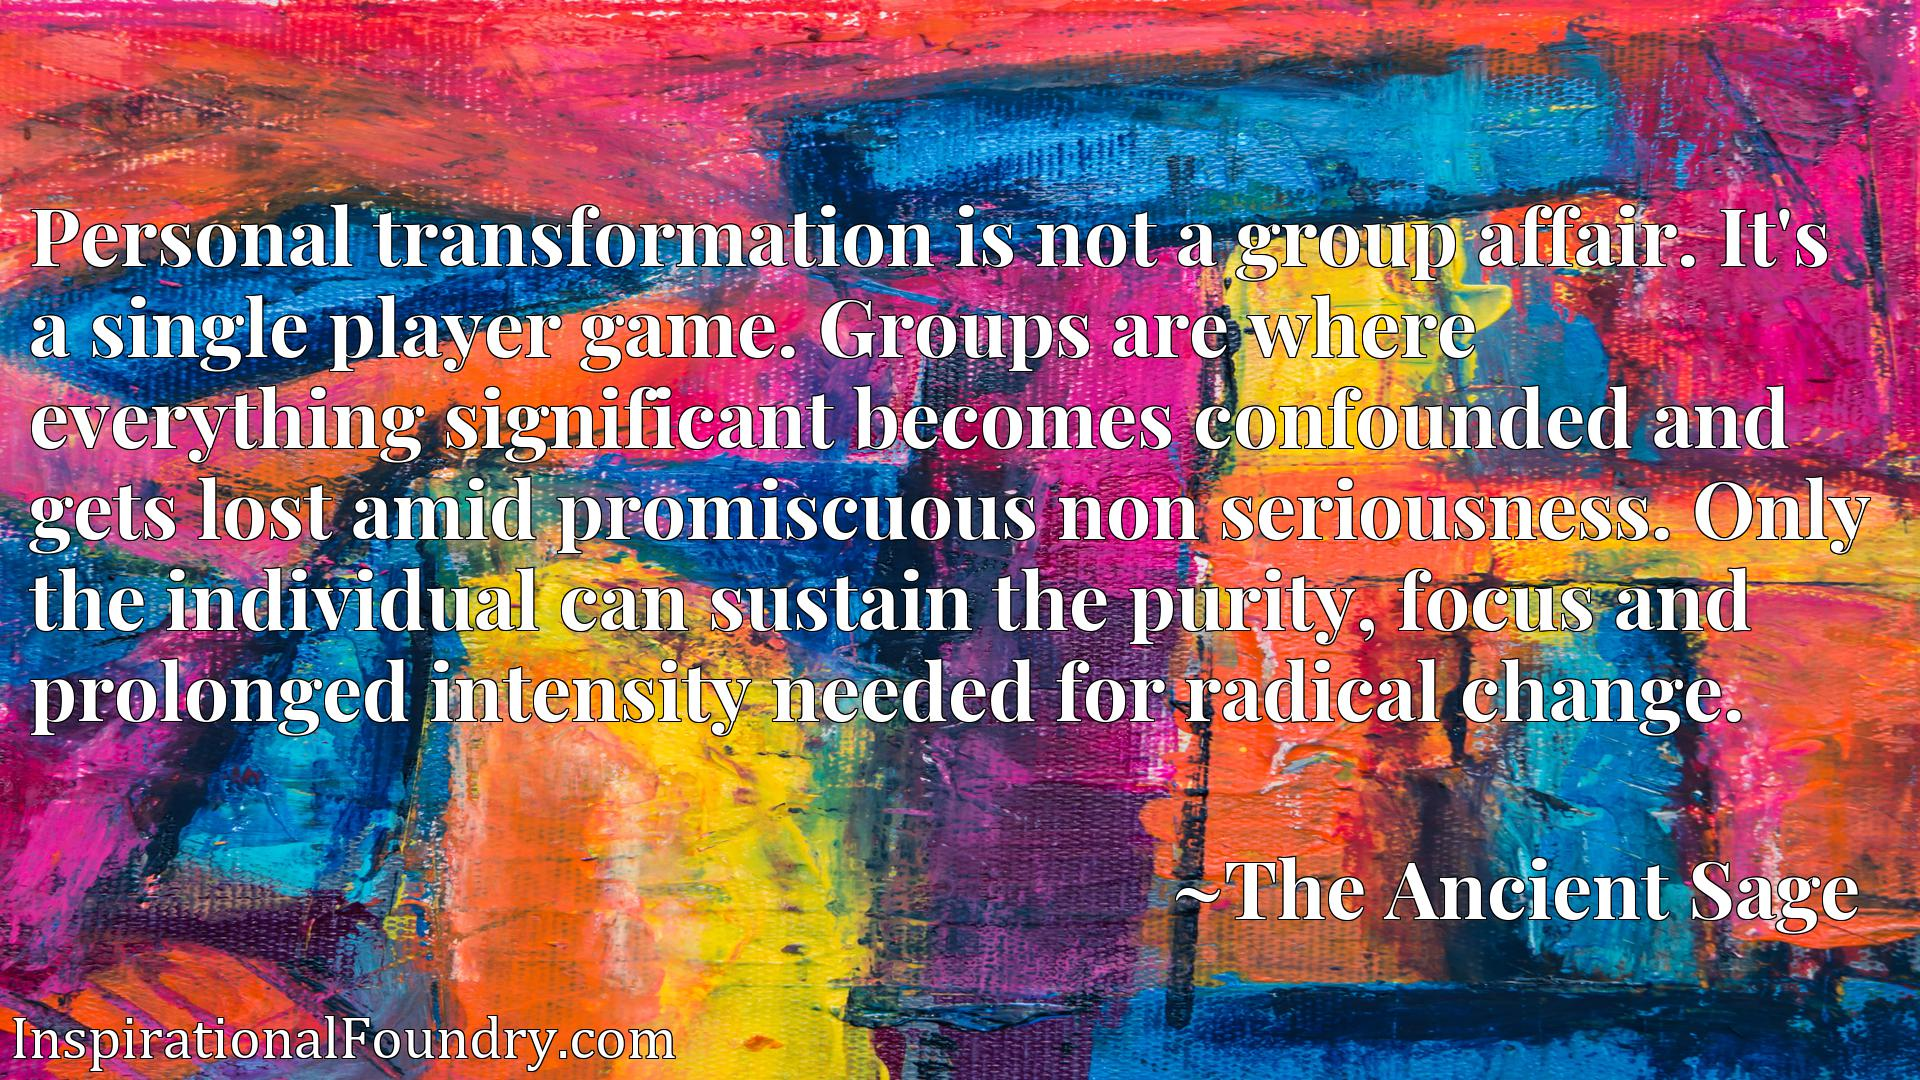 Personal transformation is not a group affair. It's a single player game. Groups are where everything significant becomes confounded and gets lost amid promiscuous non seriousness. Only the individual can sustain the purity, focus and prolonged intensity needed for radical change.